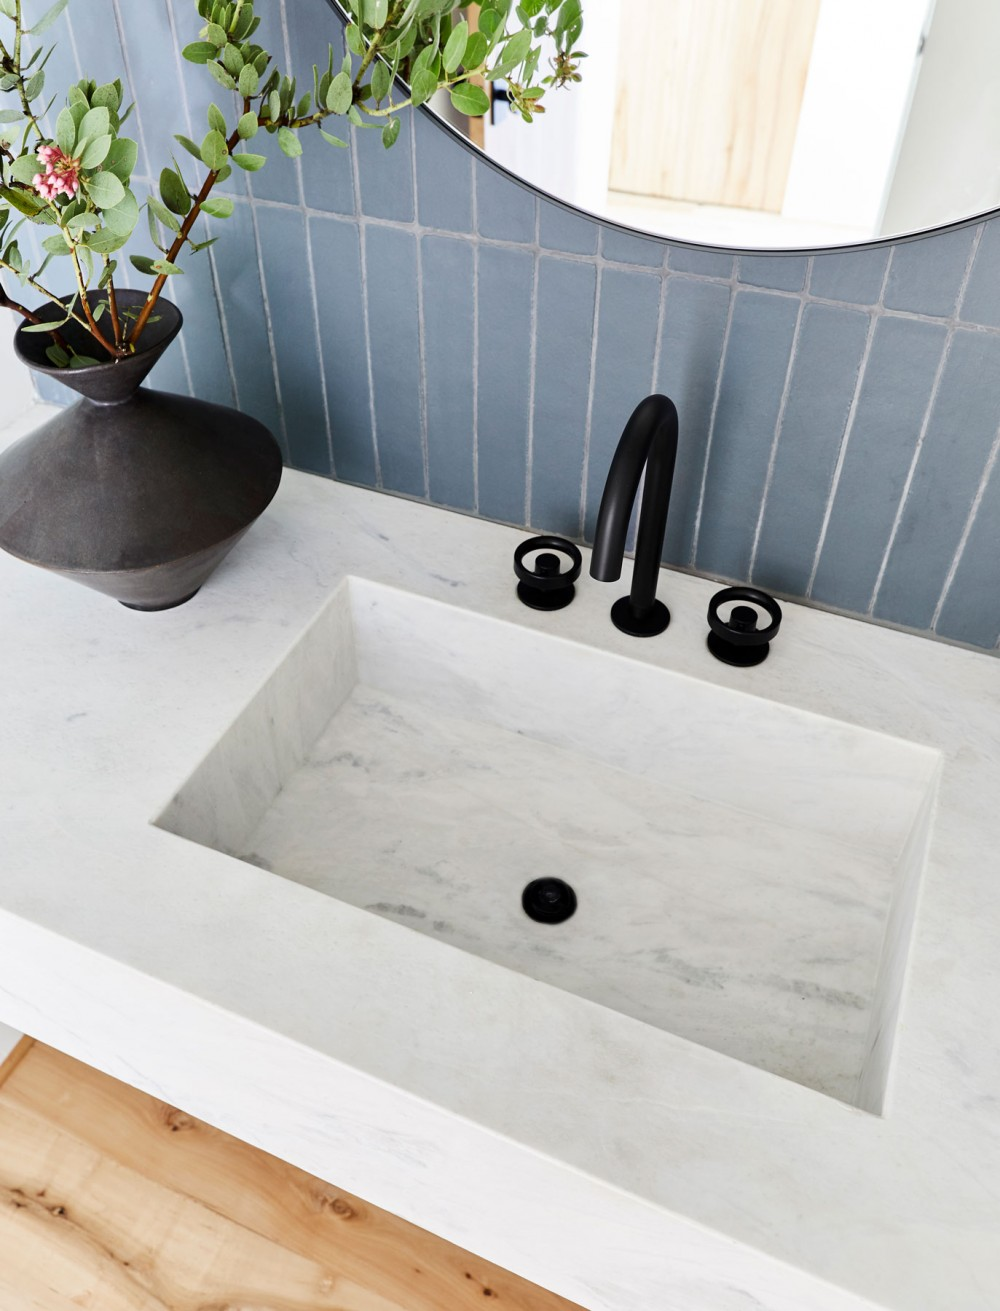 Components™ bathroom sink spout    Components handles    A faucet collection with multiple handle and spout options allowed Emily to design the perfect combination for the style she wanted to capture.